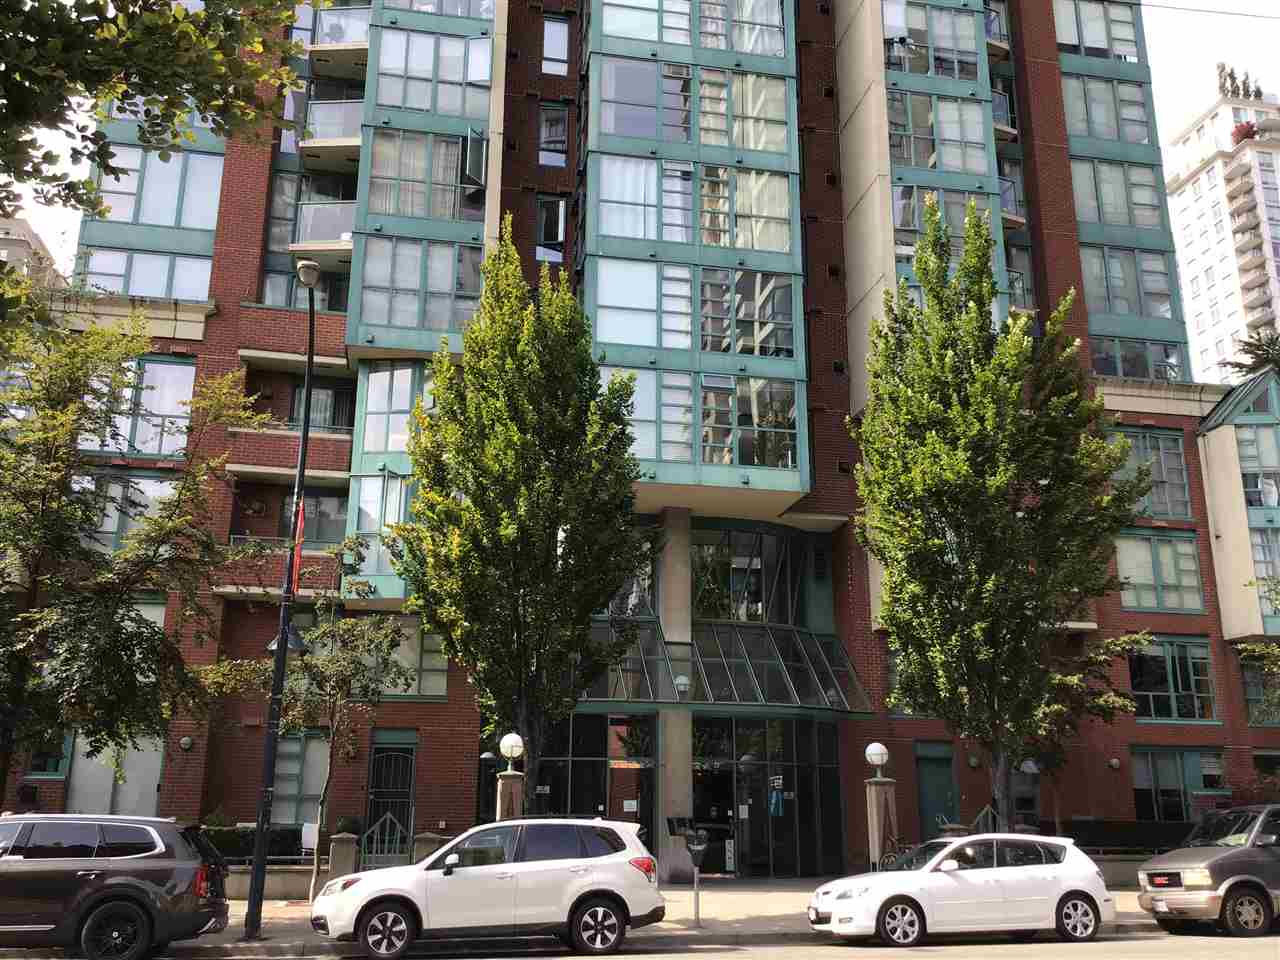 708 939 HOMER STREET - Yaletown Apartment/Condo for sale, 1 Bedroom (R2486455) - #1